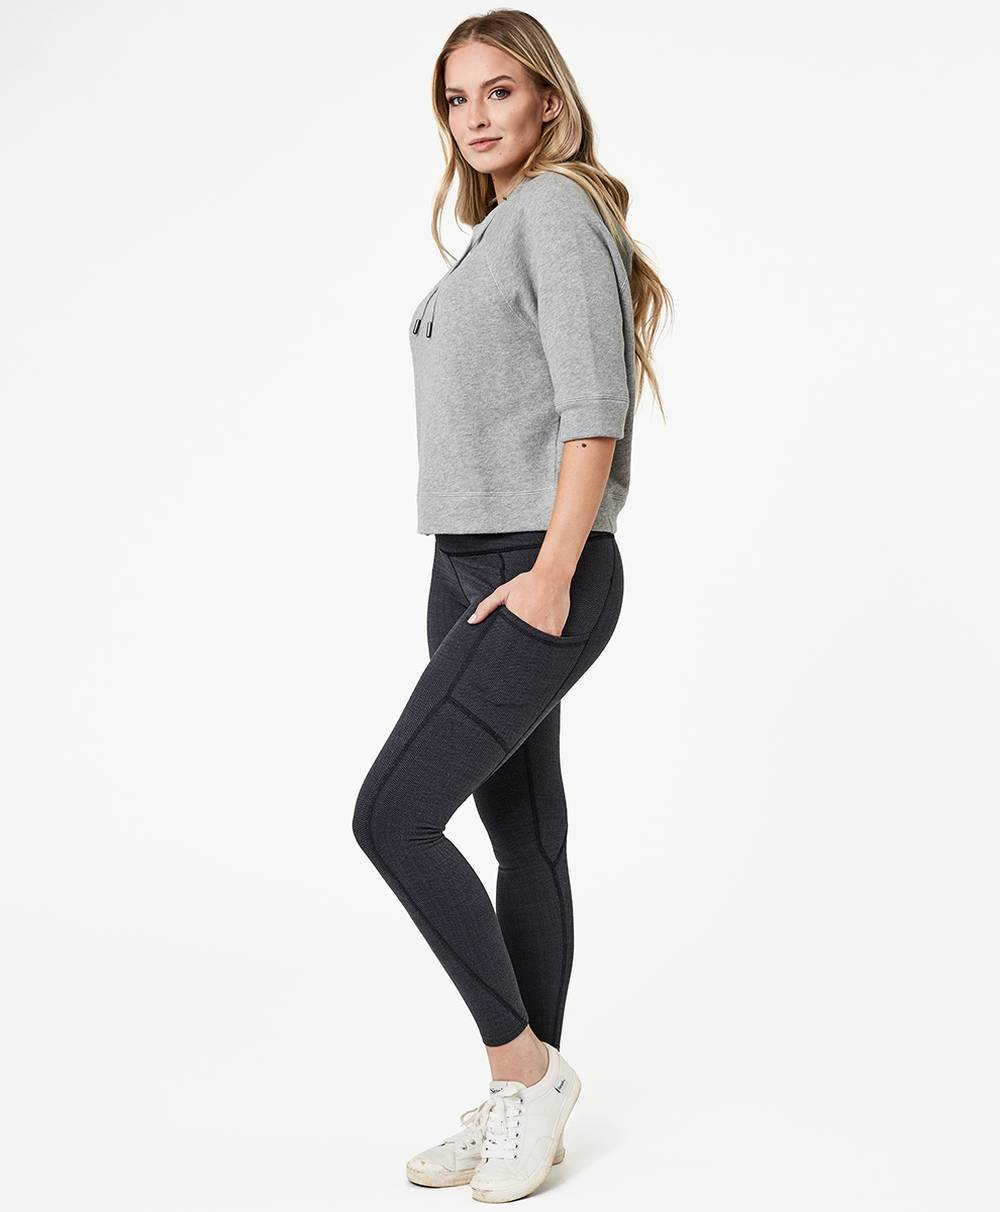 pact affordable organic workout leggings pockets